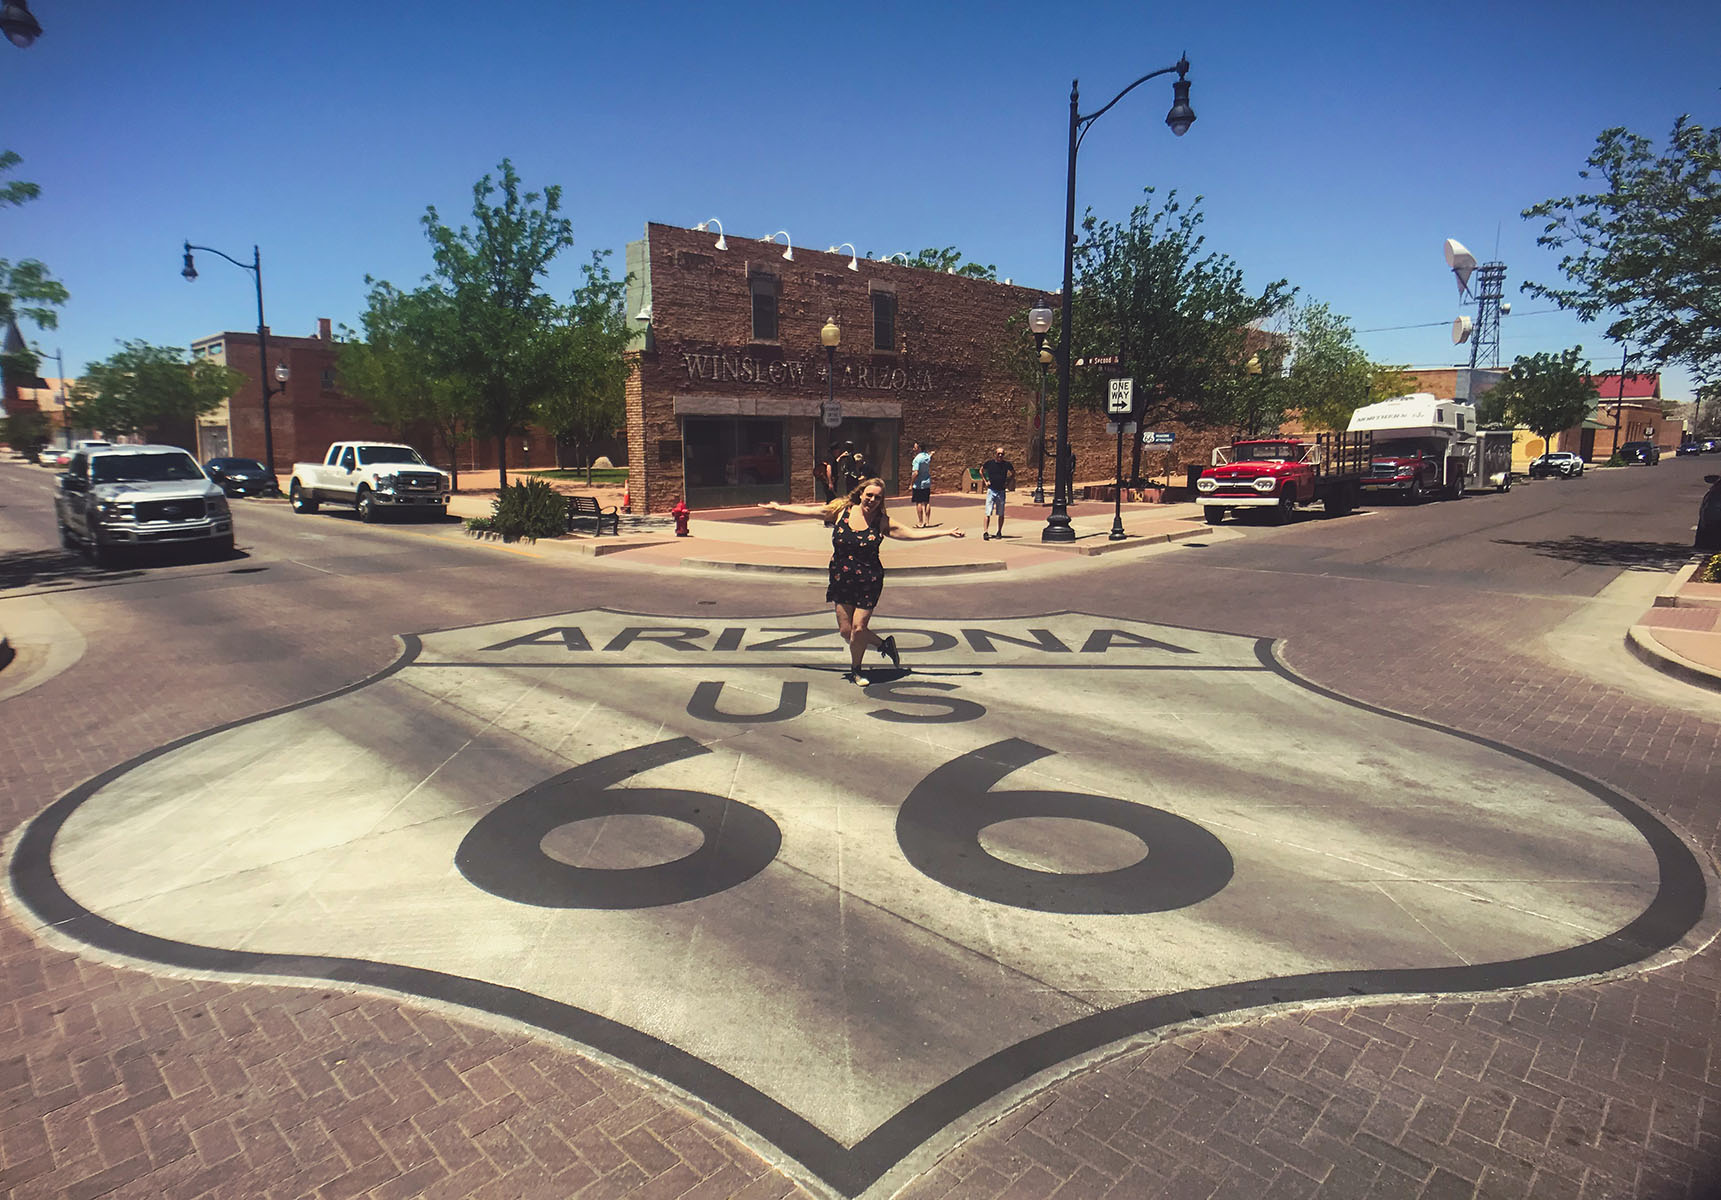 Winslow arizona take it easy the eagles road trip route 66 USA